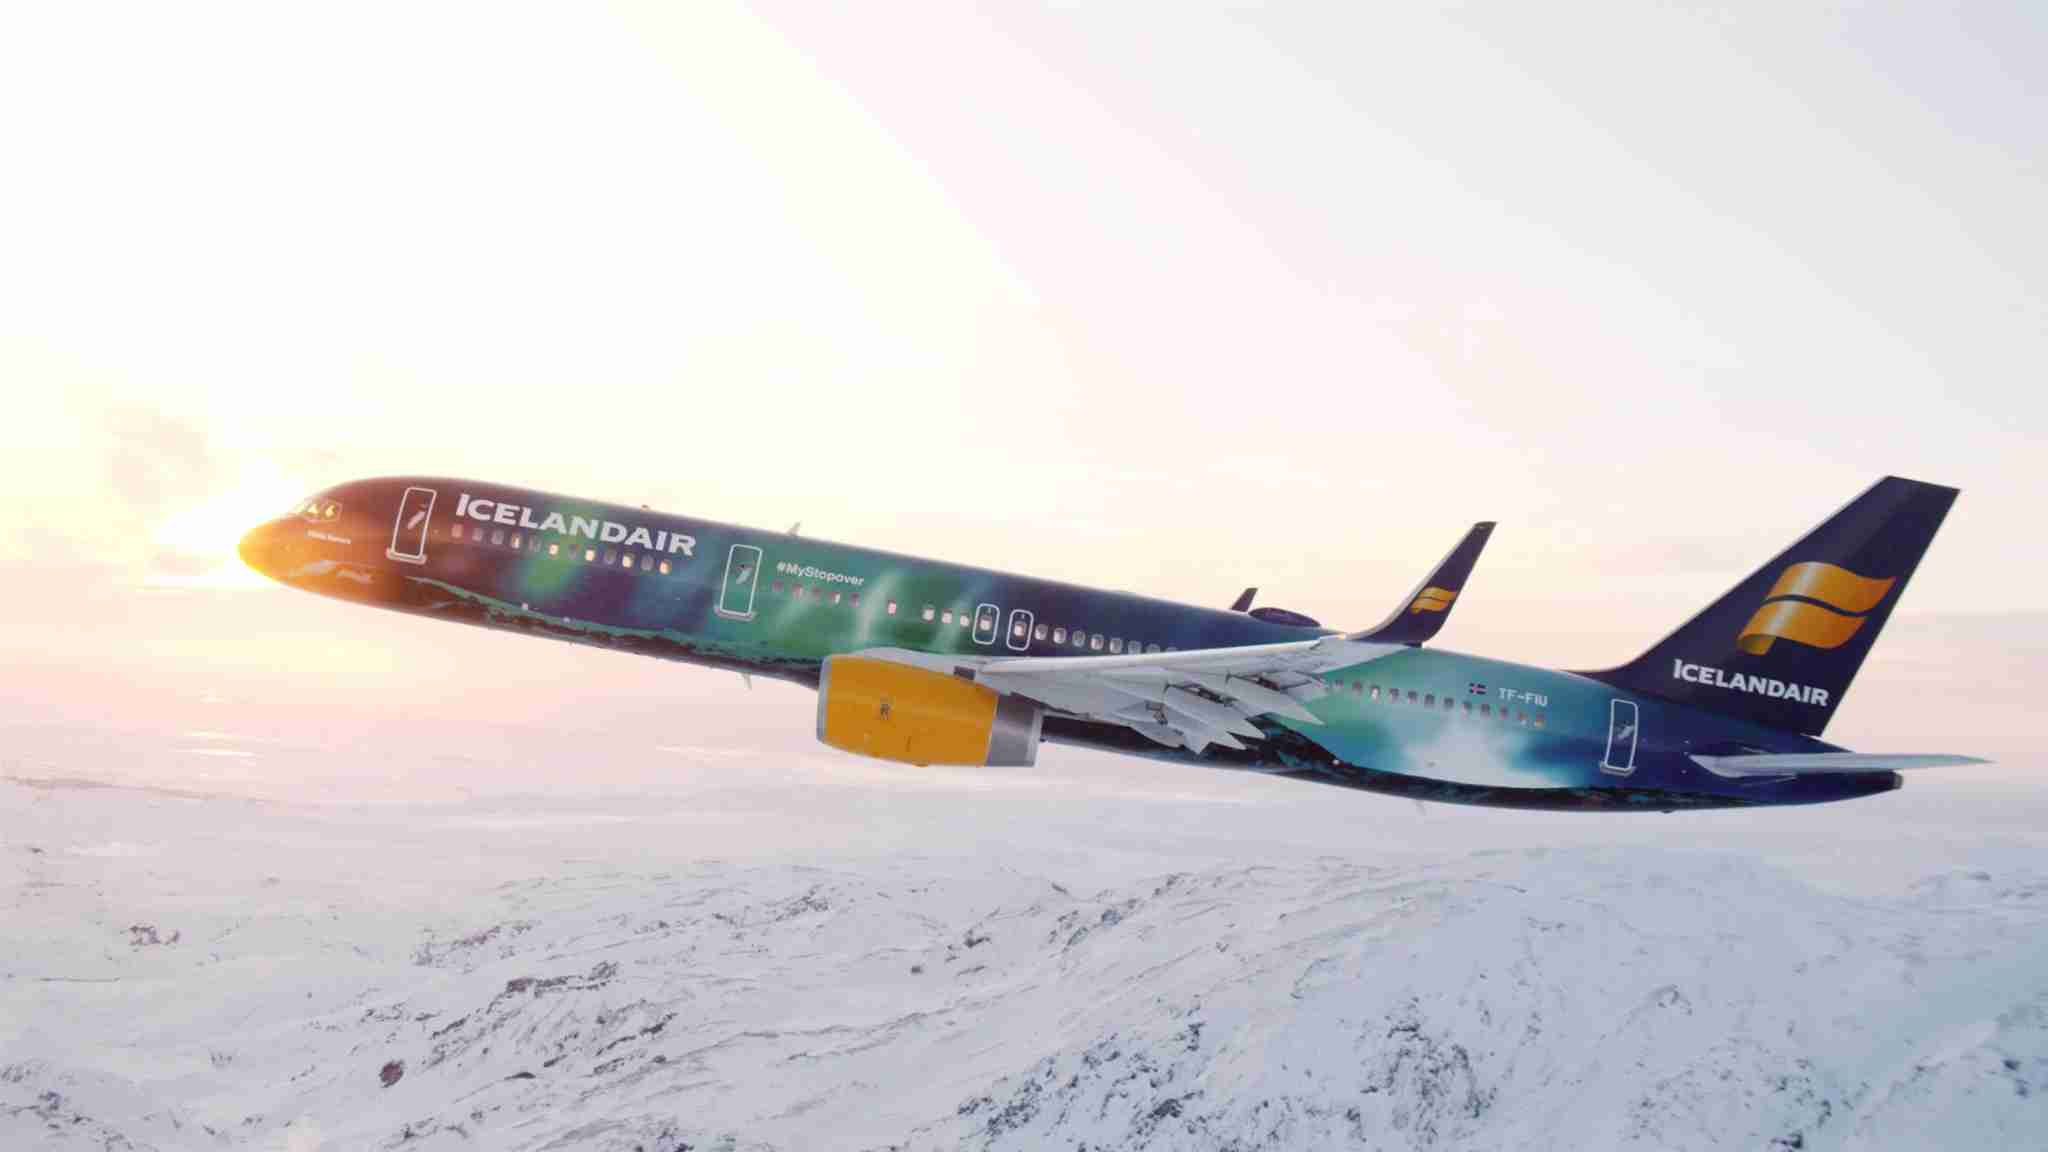 Photo courtesy of Icelandair